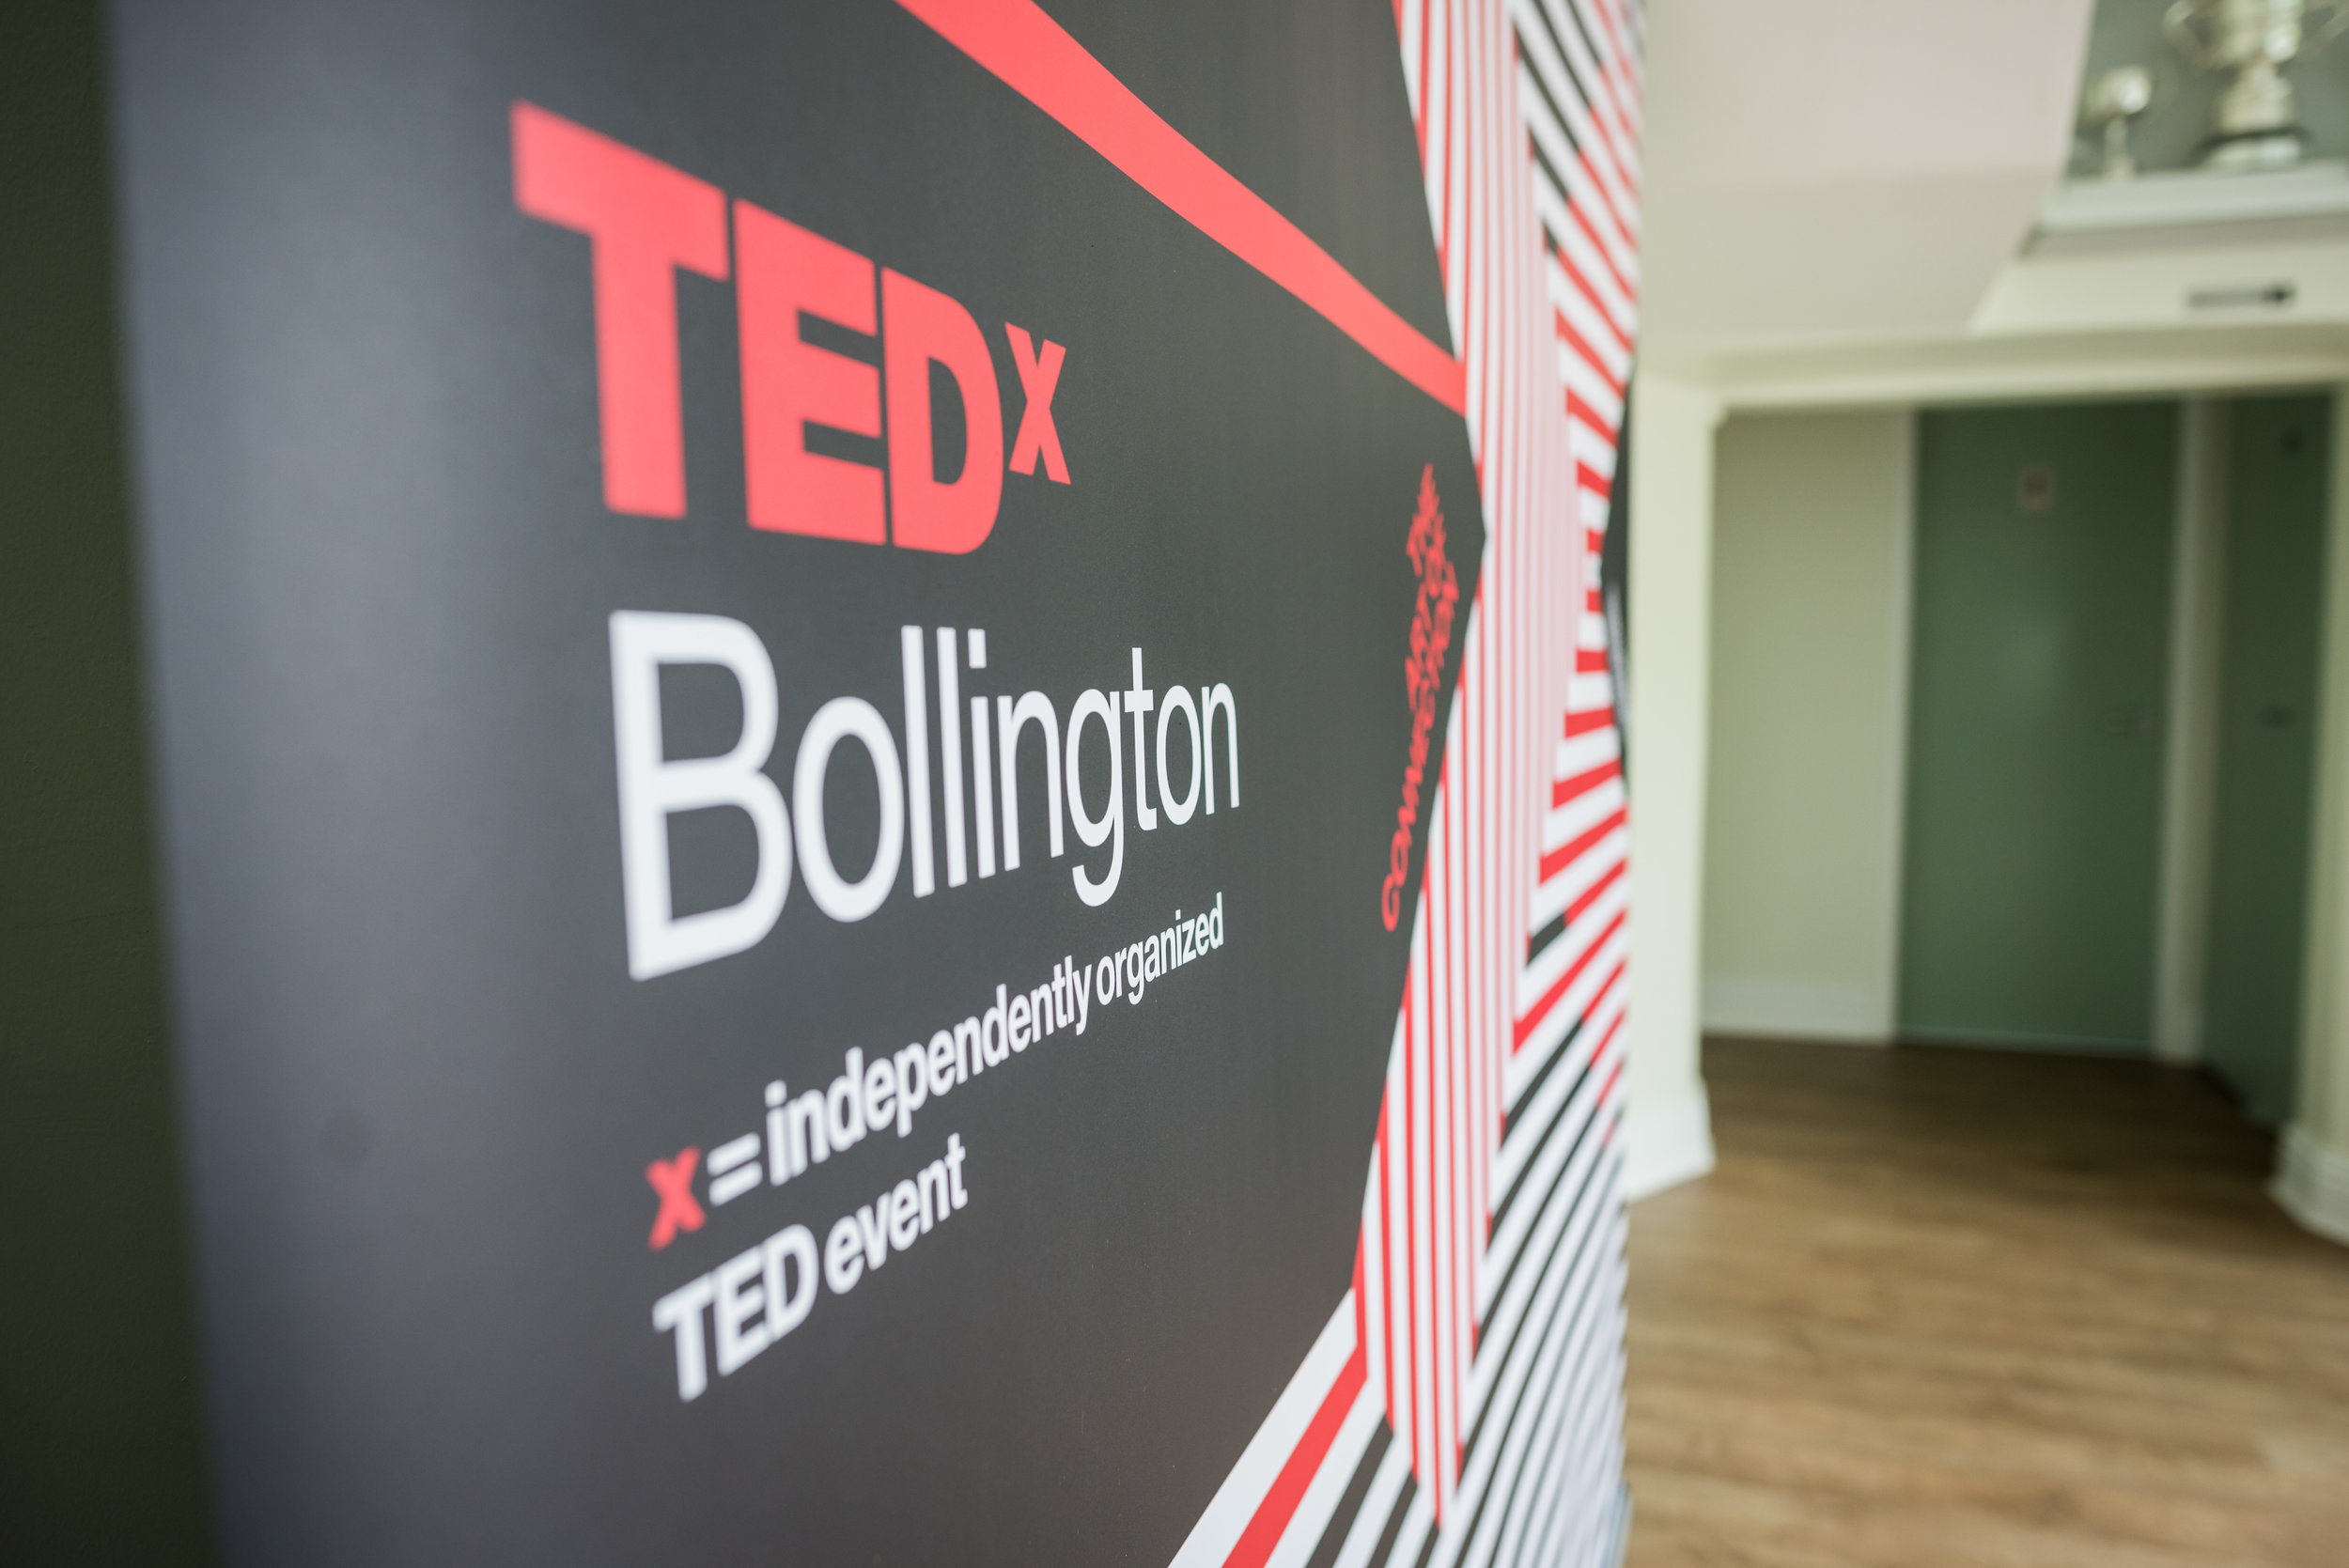 PHOTO: MARTIN HAMBLETON; TEDx BRANDING BY VISUAL SENSE